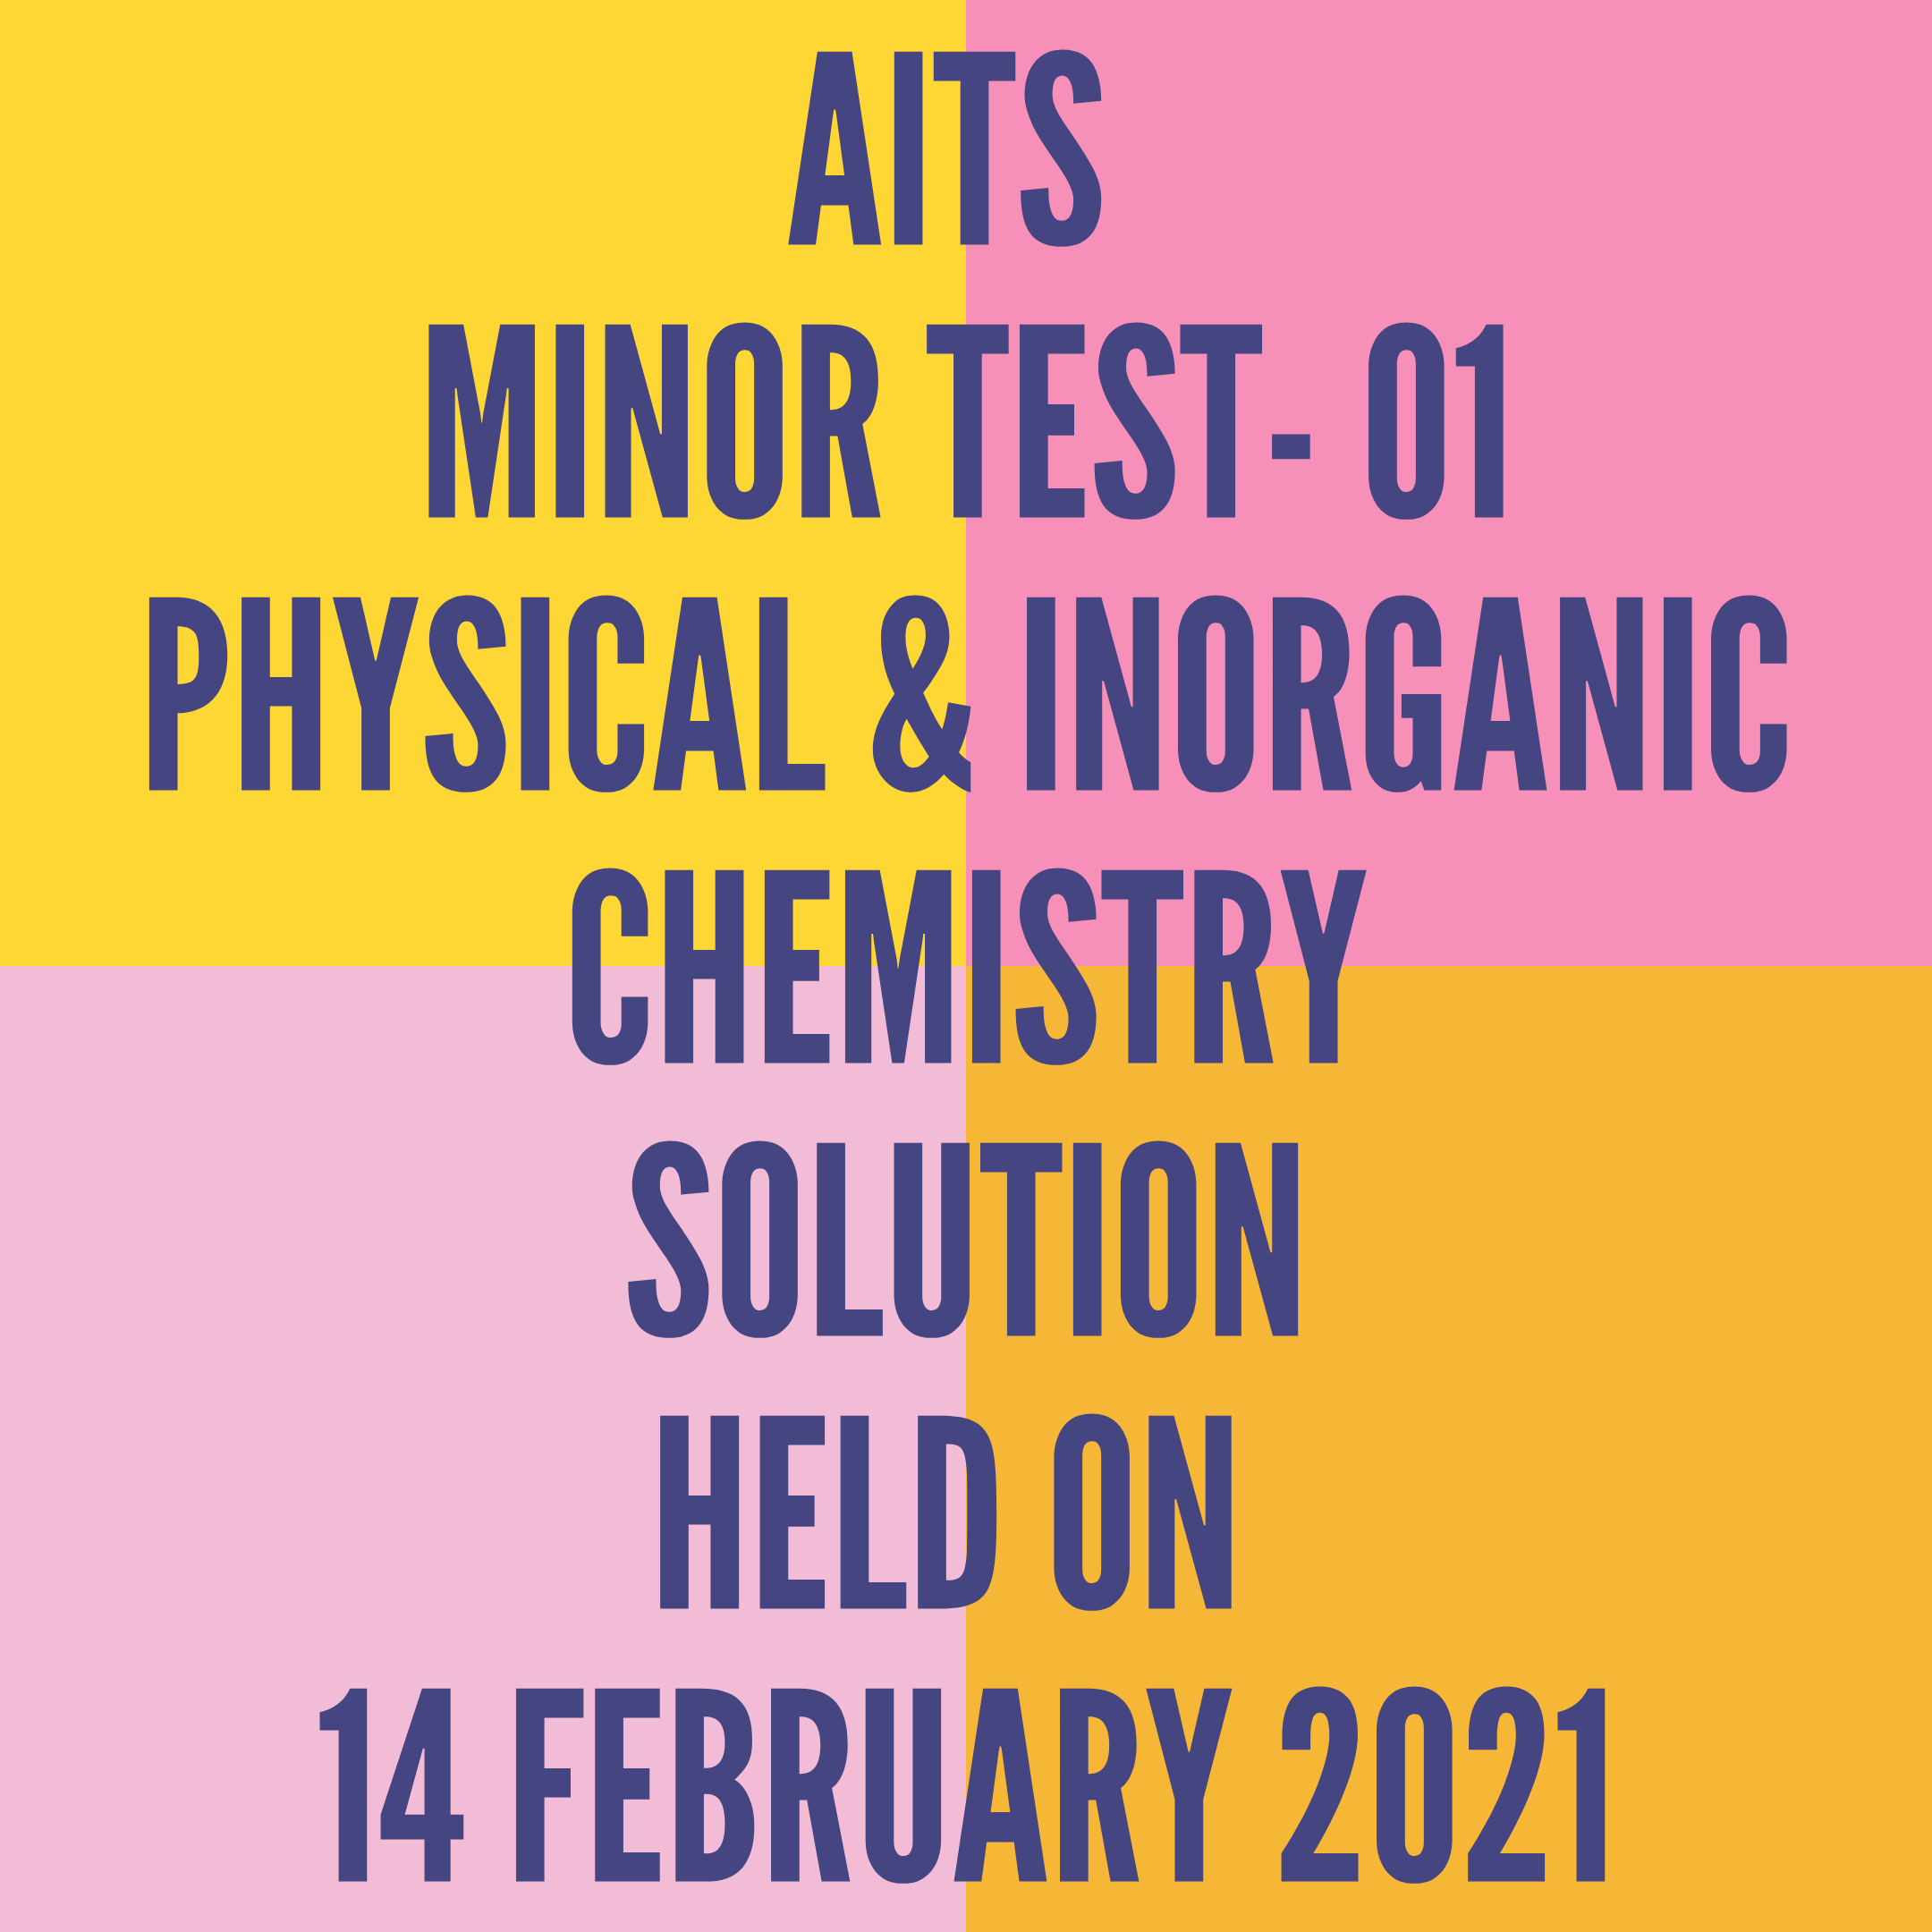 AITS -MINOR TEST-01 PHYSICAL & INORGANIC CHEMISTRY- SOLUTION  HELD ON -14 FEBRUARY 2021